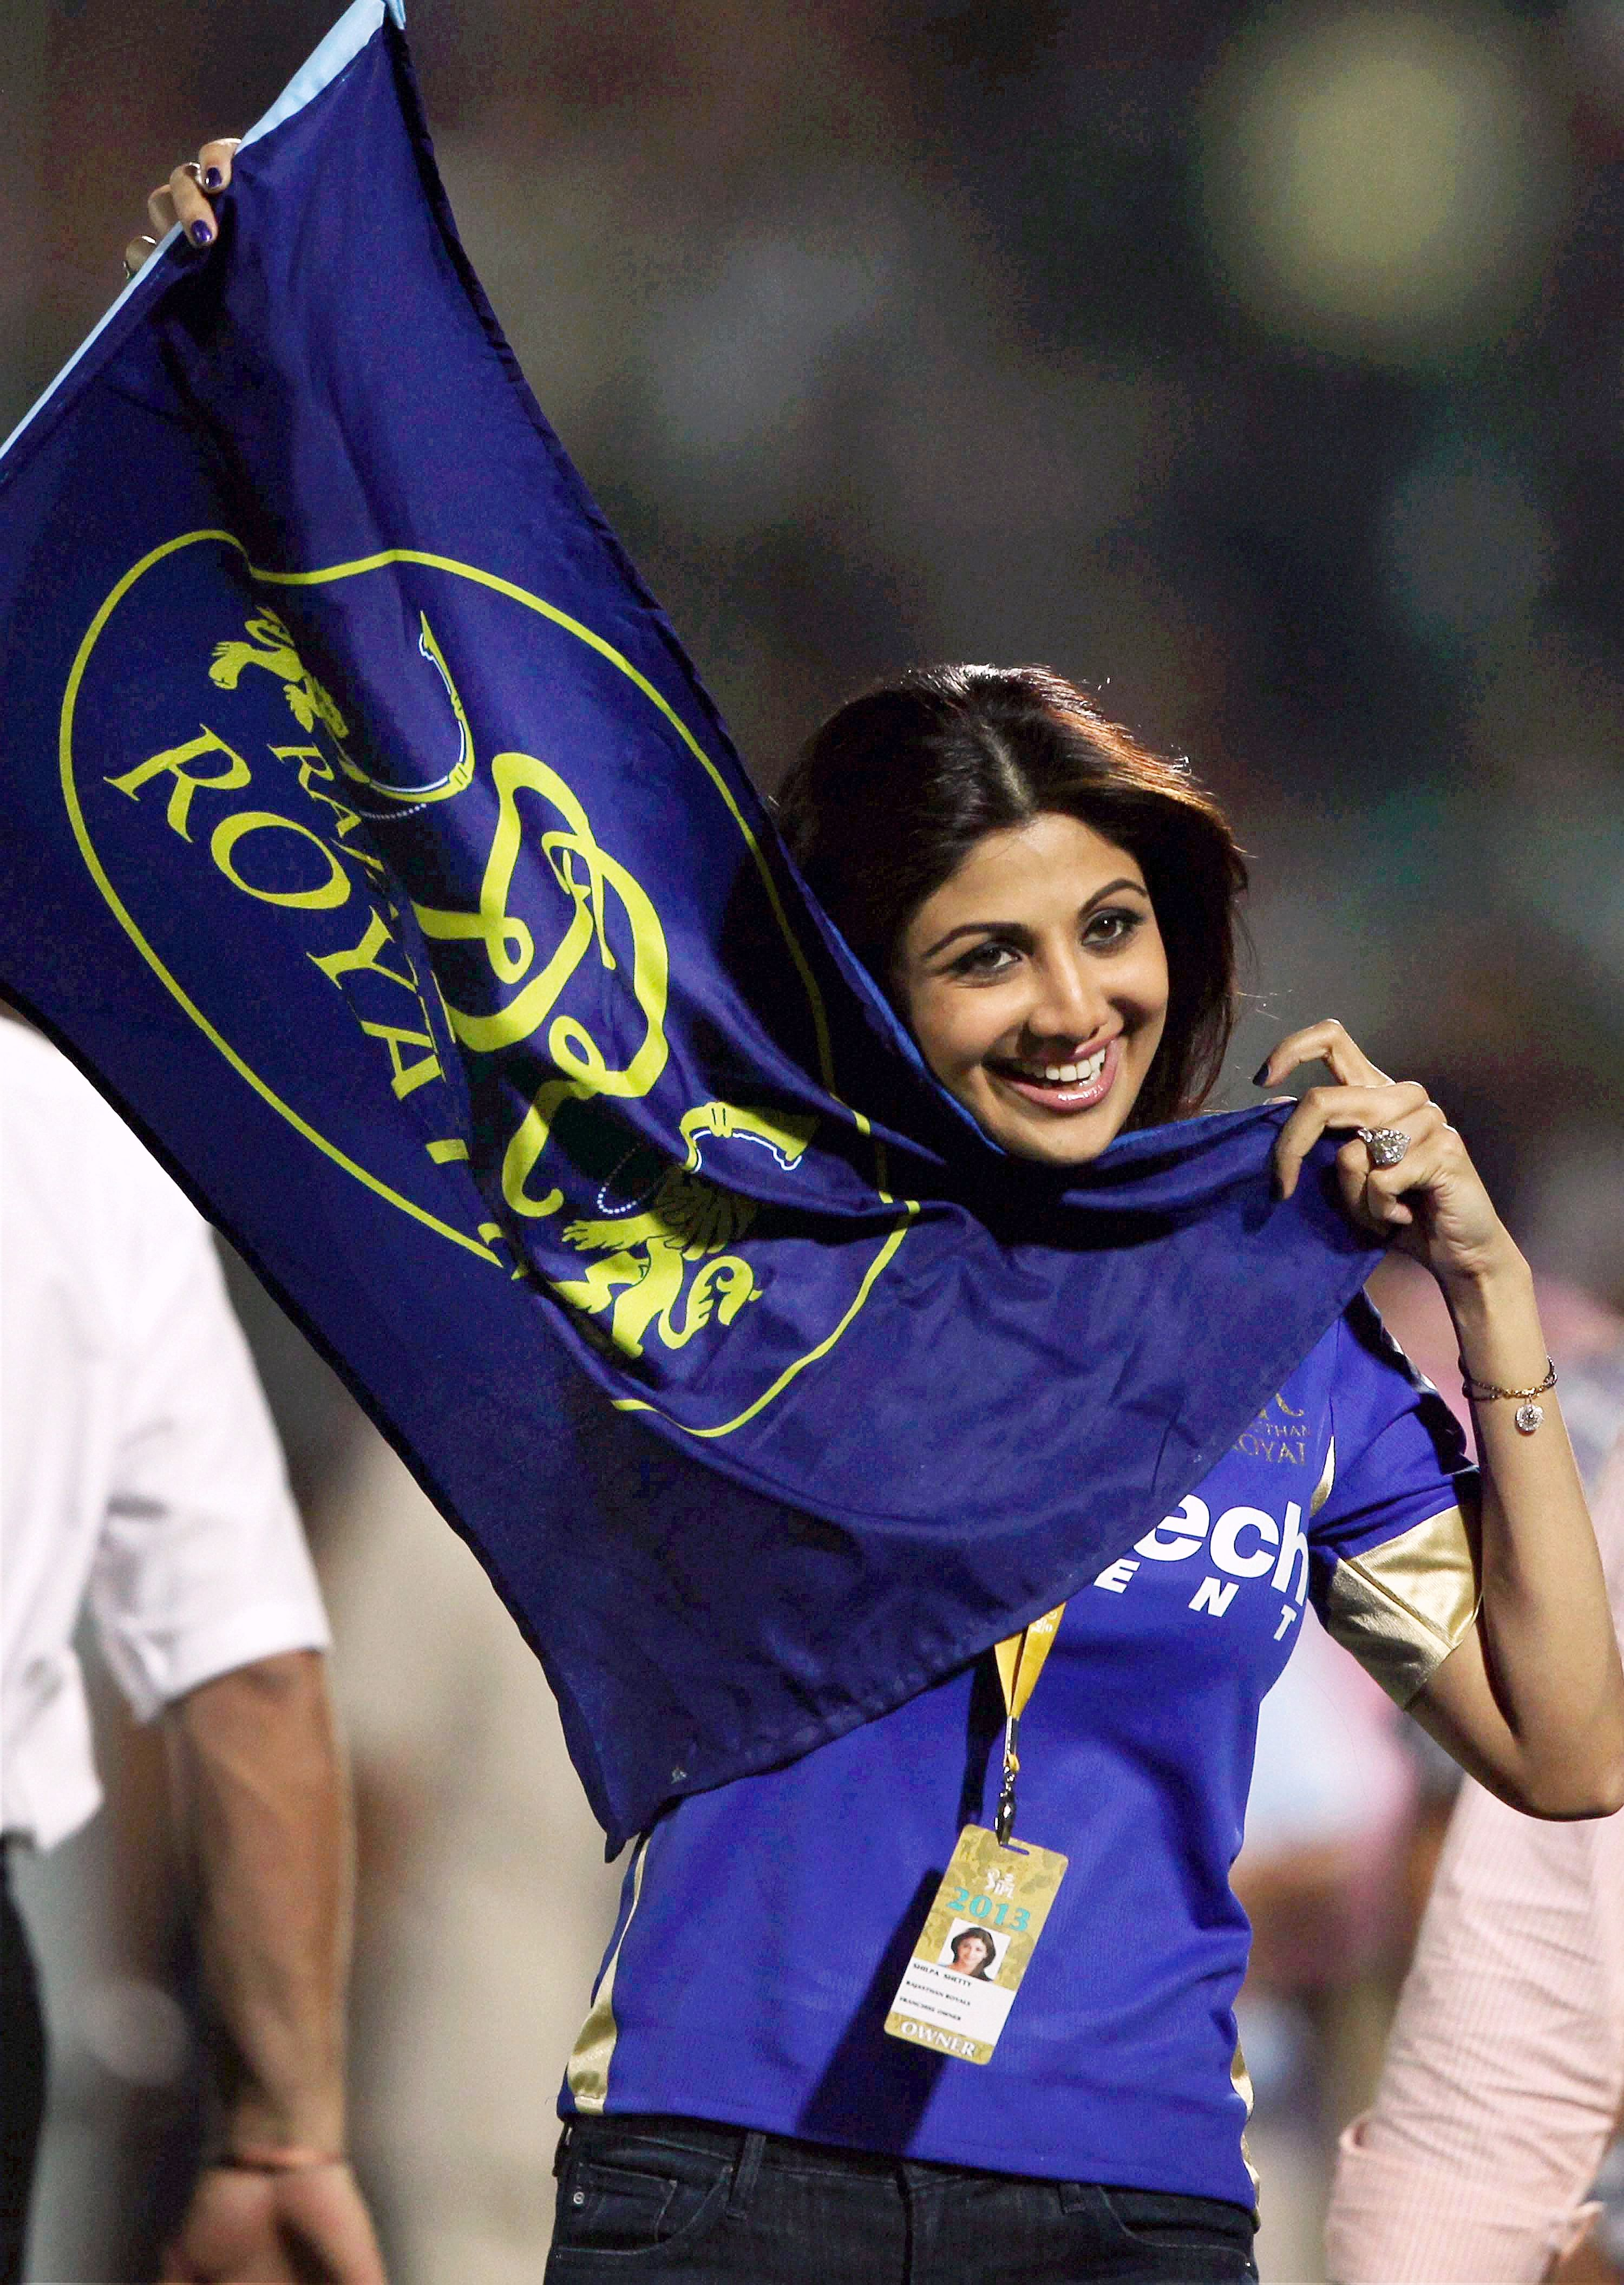 Shilpa Shetty celebrates her team's victory over Kolkata Knight Riders in Jaipur on Monday. (Photo: PTI)